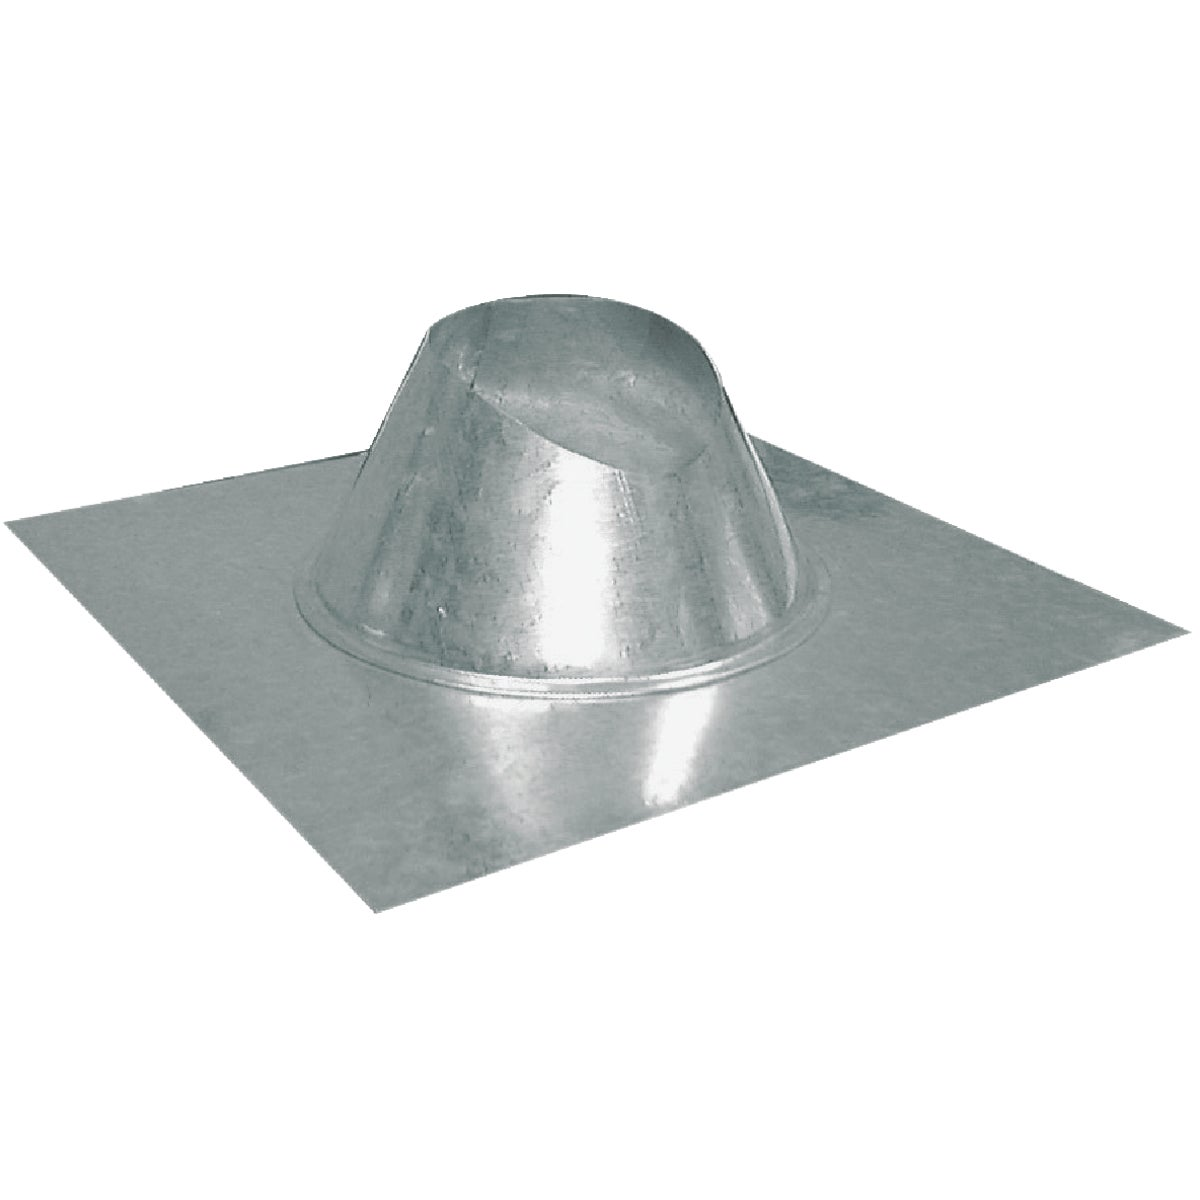 "4"" GALV ROOF FLASHING"